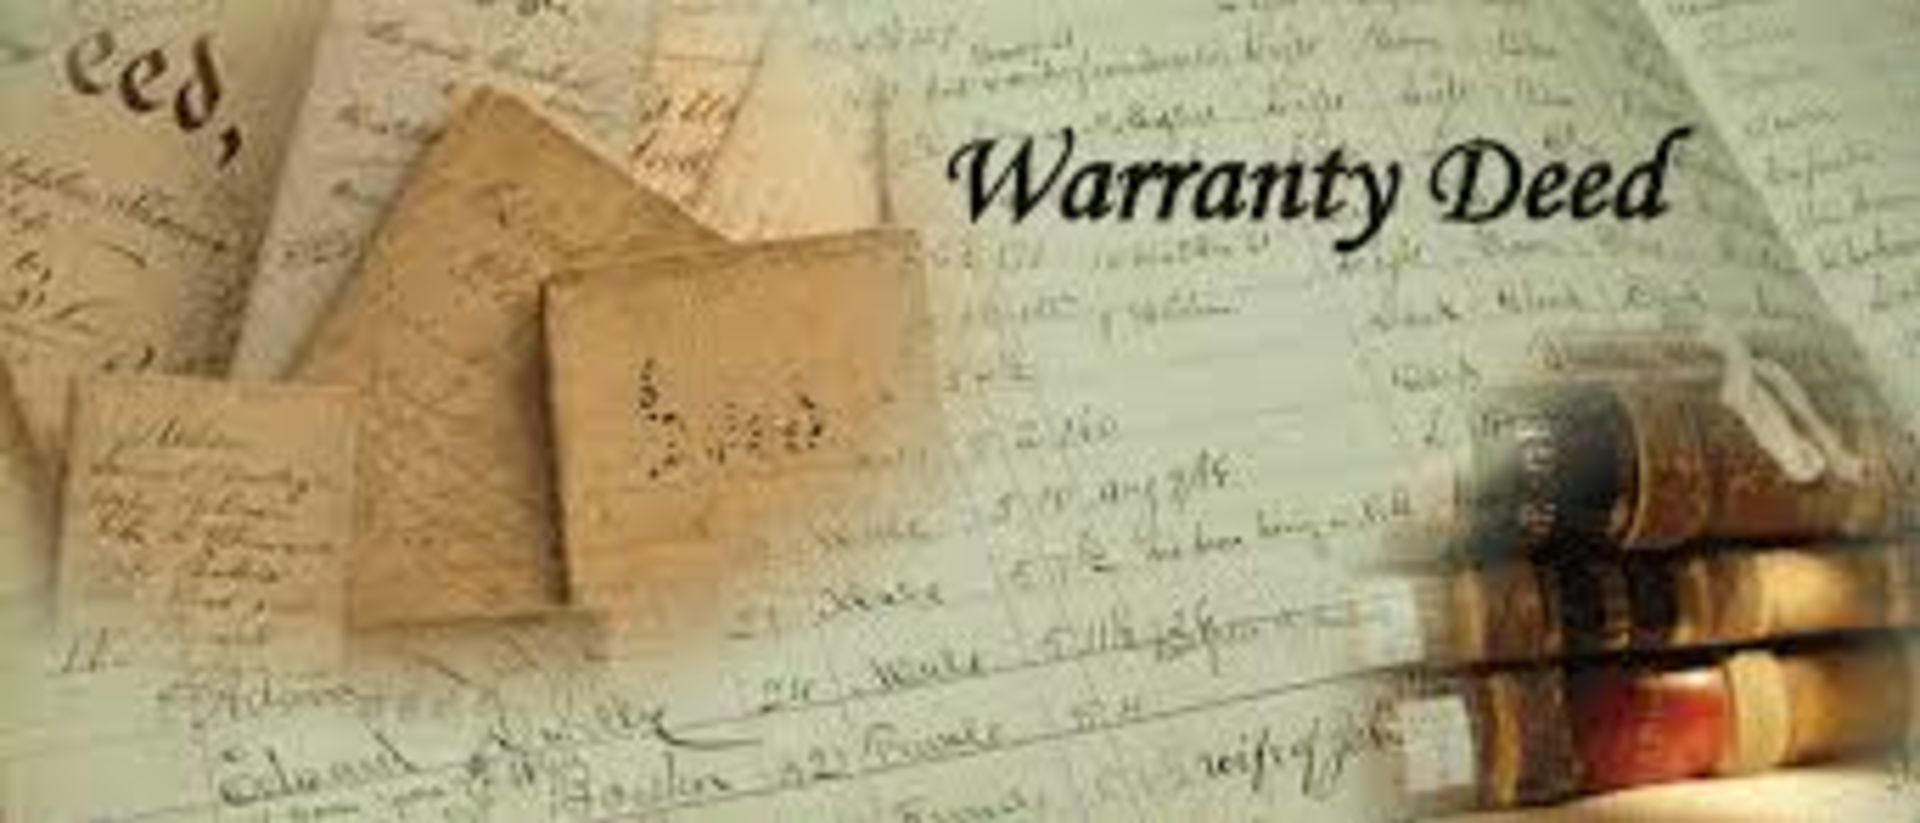 What Are Warranty Deeds?